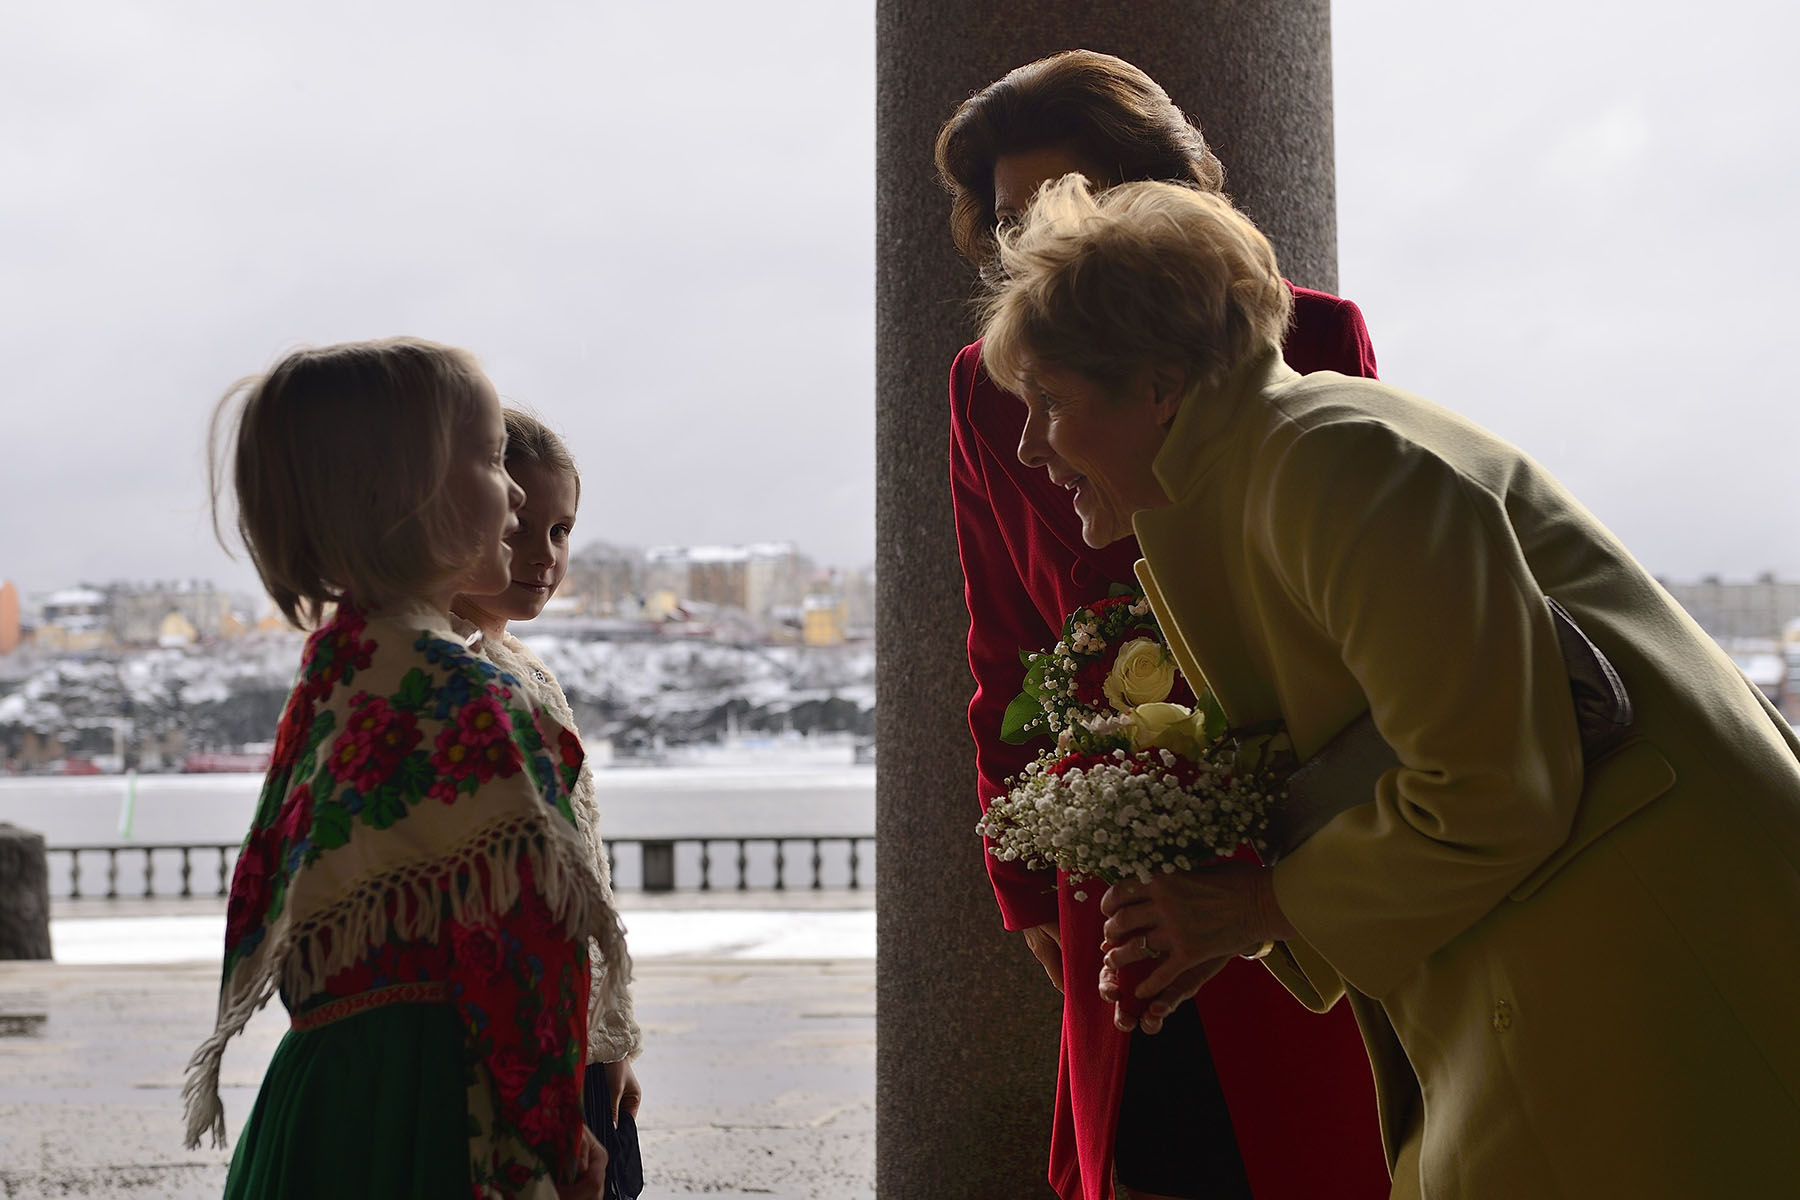 Upon arriving at Stockholm City Hall for a working luncheon, Mrs. Johnston was offered flowers by two young Swedish girls.